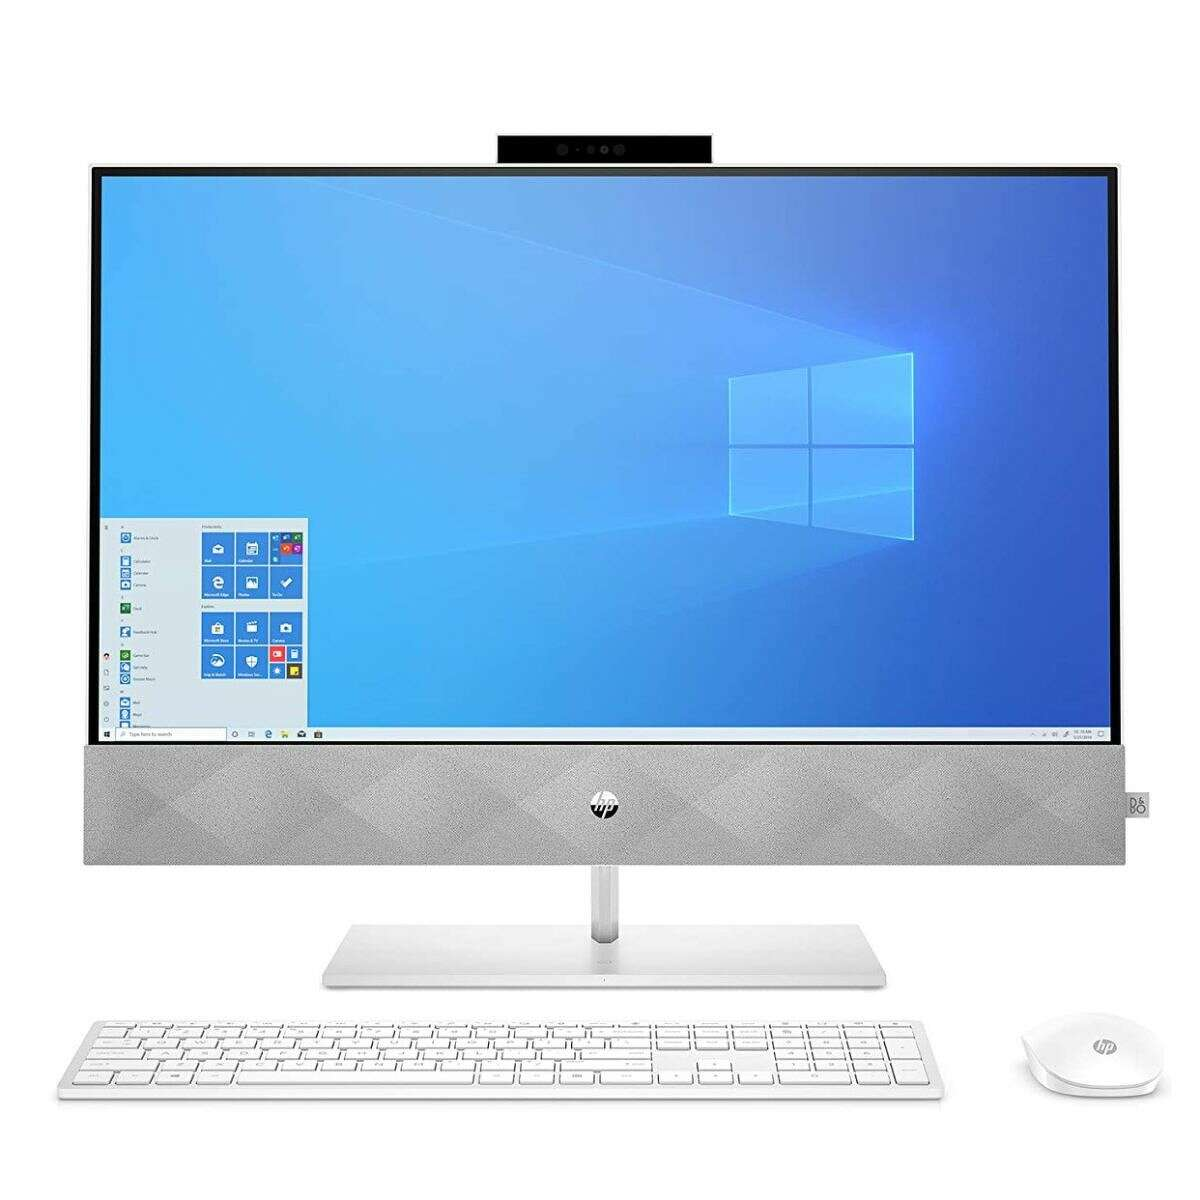 1) HP Pavilion All-in-One Desktop Computer, 27-inch Full HD Touchscreen, Intel Core i7-10700T Processor, Intel UHD Graphics 630, 16 GB Ram, 1 TB SSD Storage (27-d0080, Snowflake White): $1349.99 Shop Now